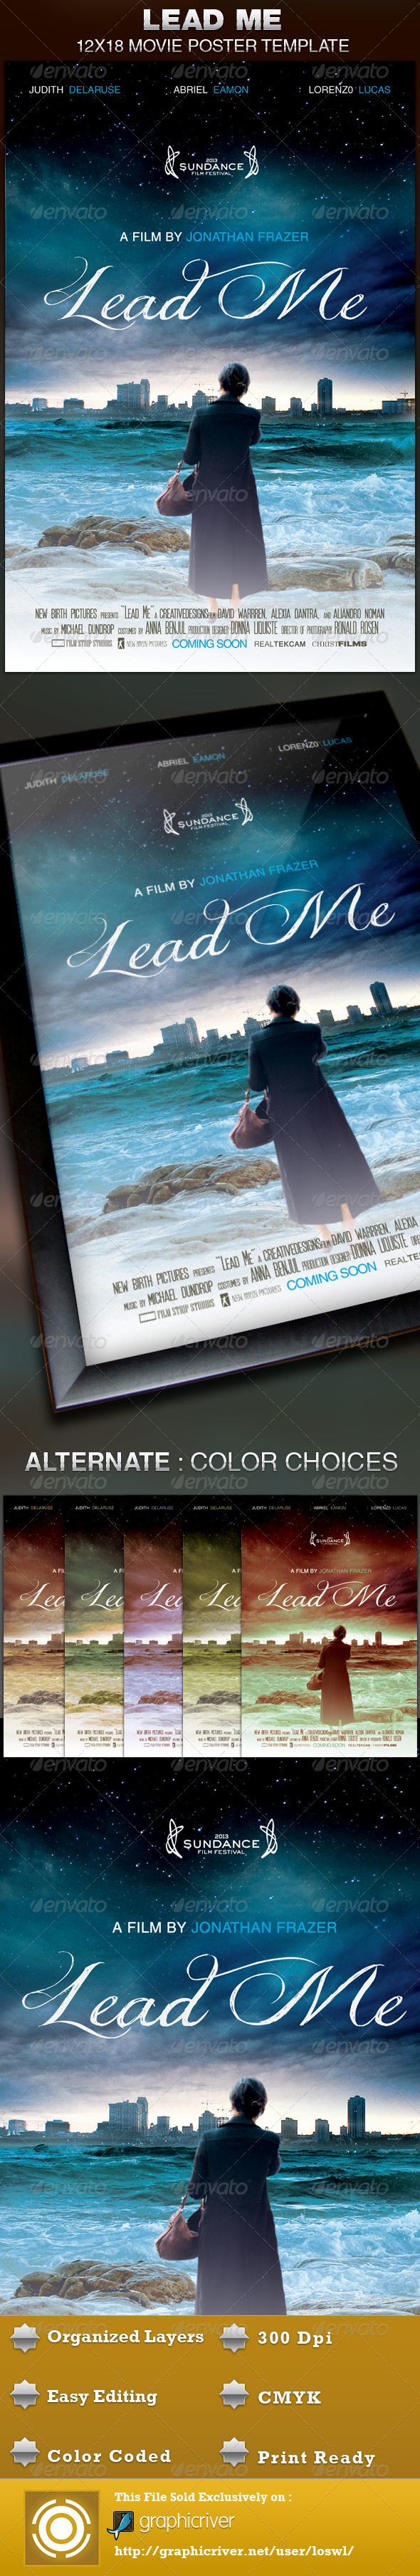 GraphicRiver Lead Me Movie Poster Template 4526173